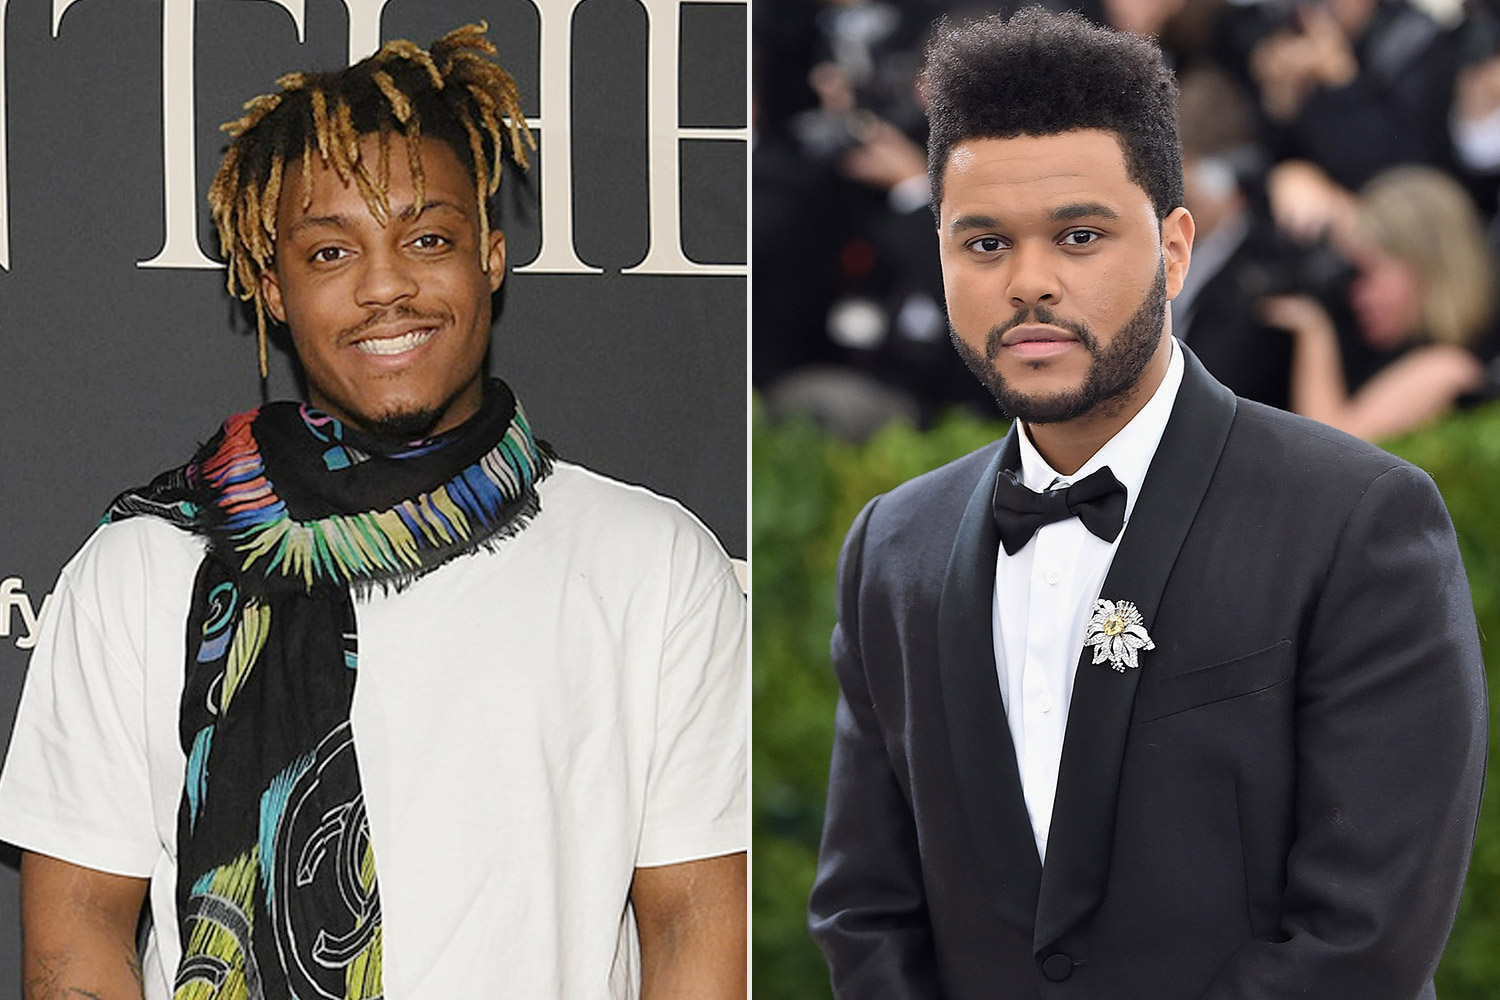 Juice Wrld and The Weeknd